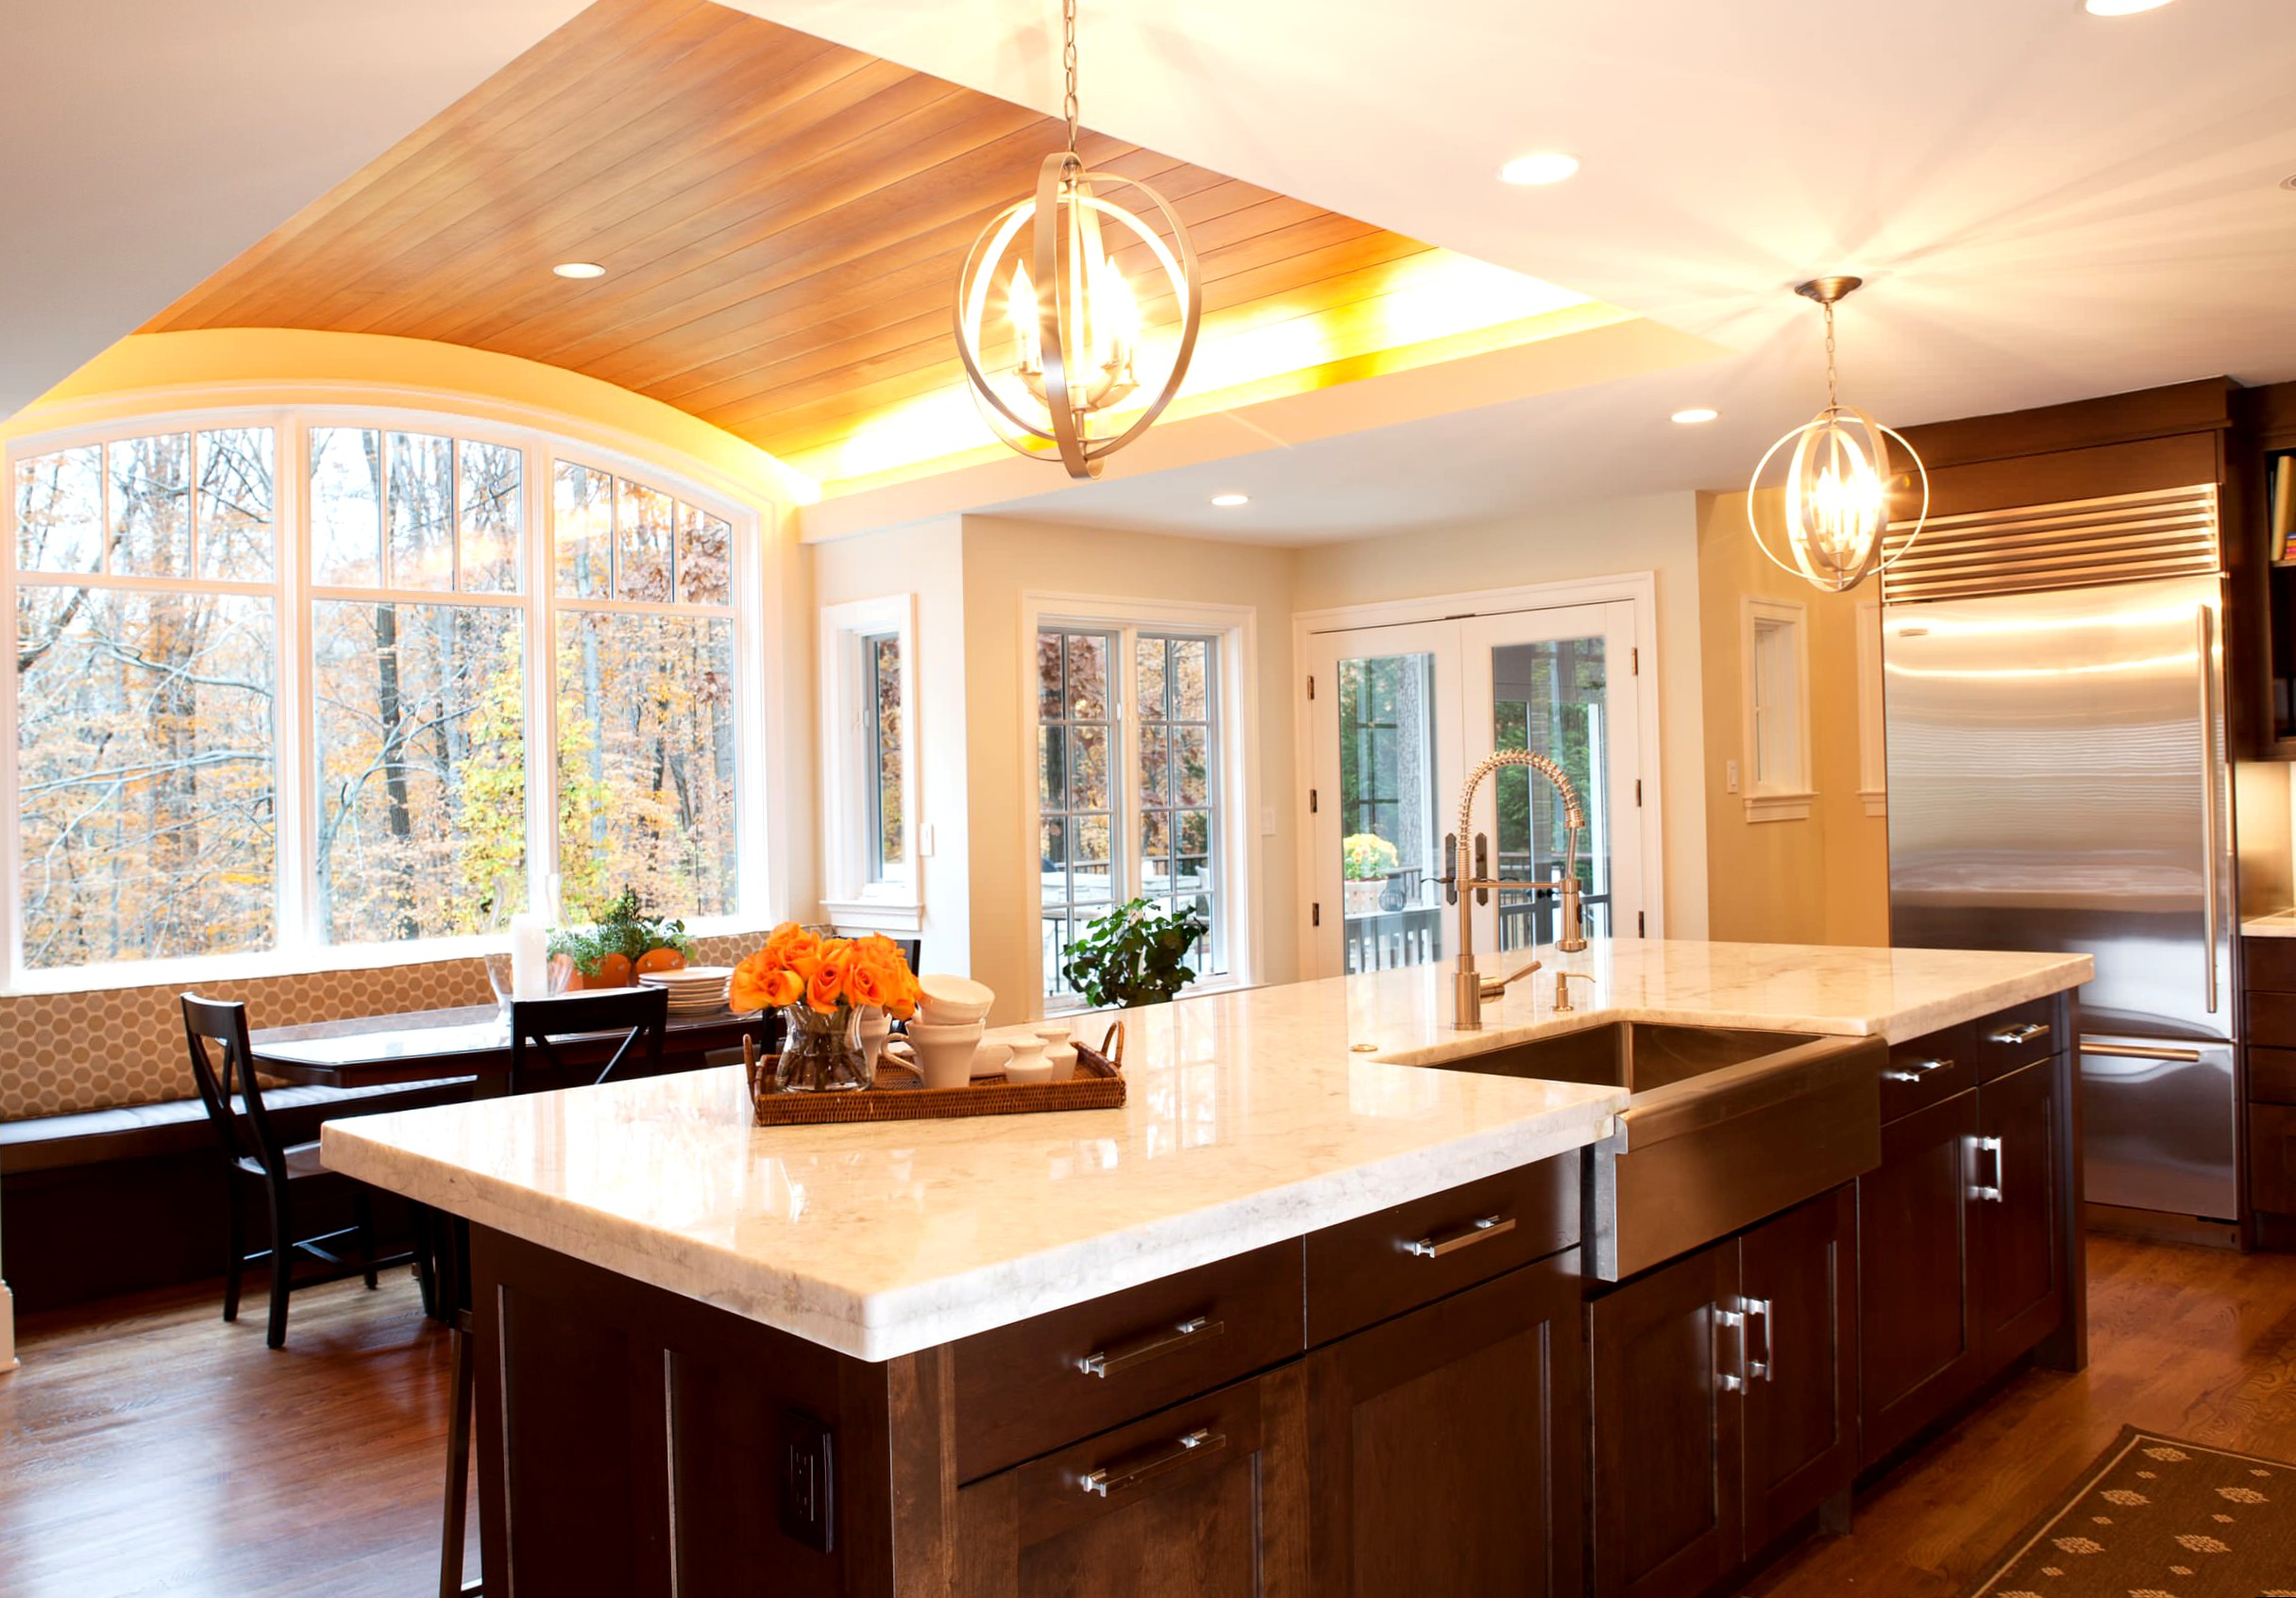 Cached Kitchen ceiling design photos